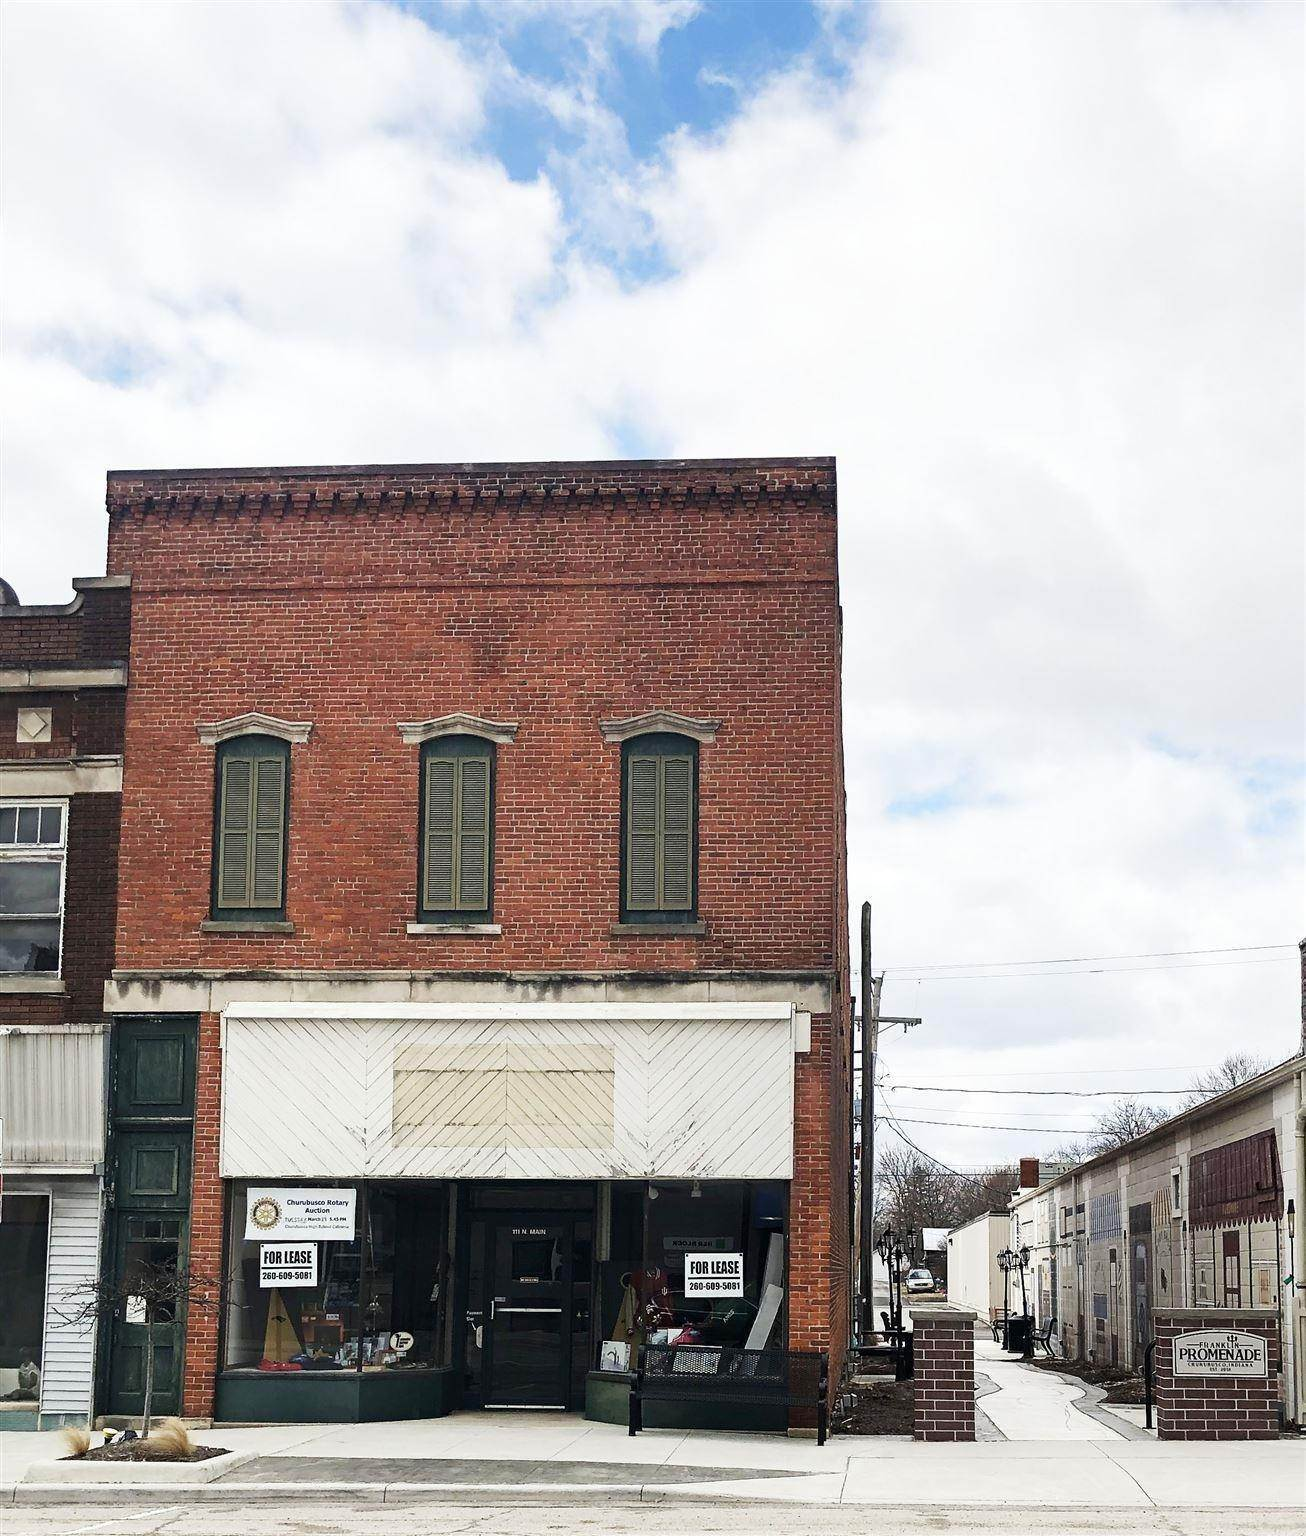 Commercial for Sale at 111 Main Street Churubusco, Indiana 46723 United States